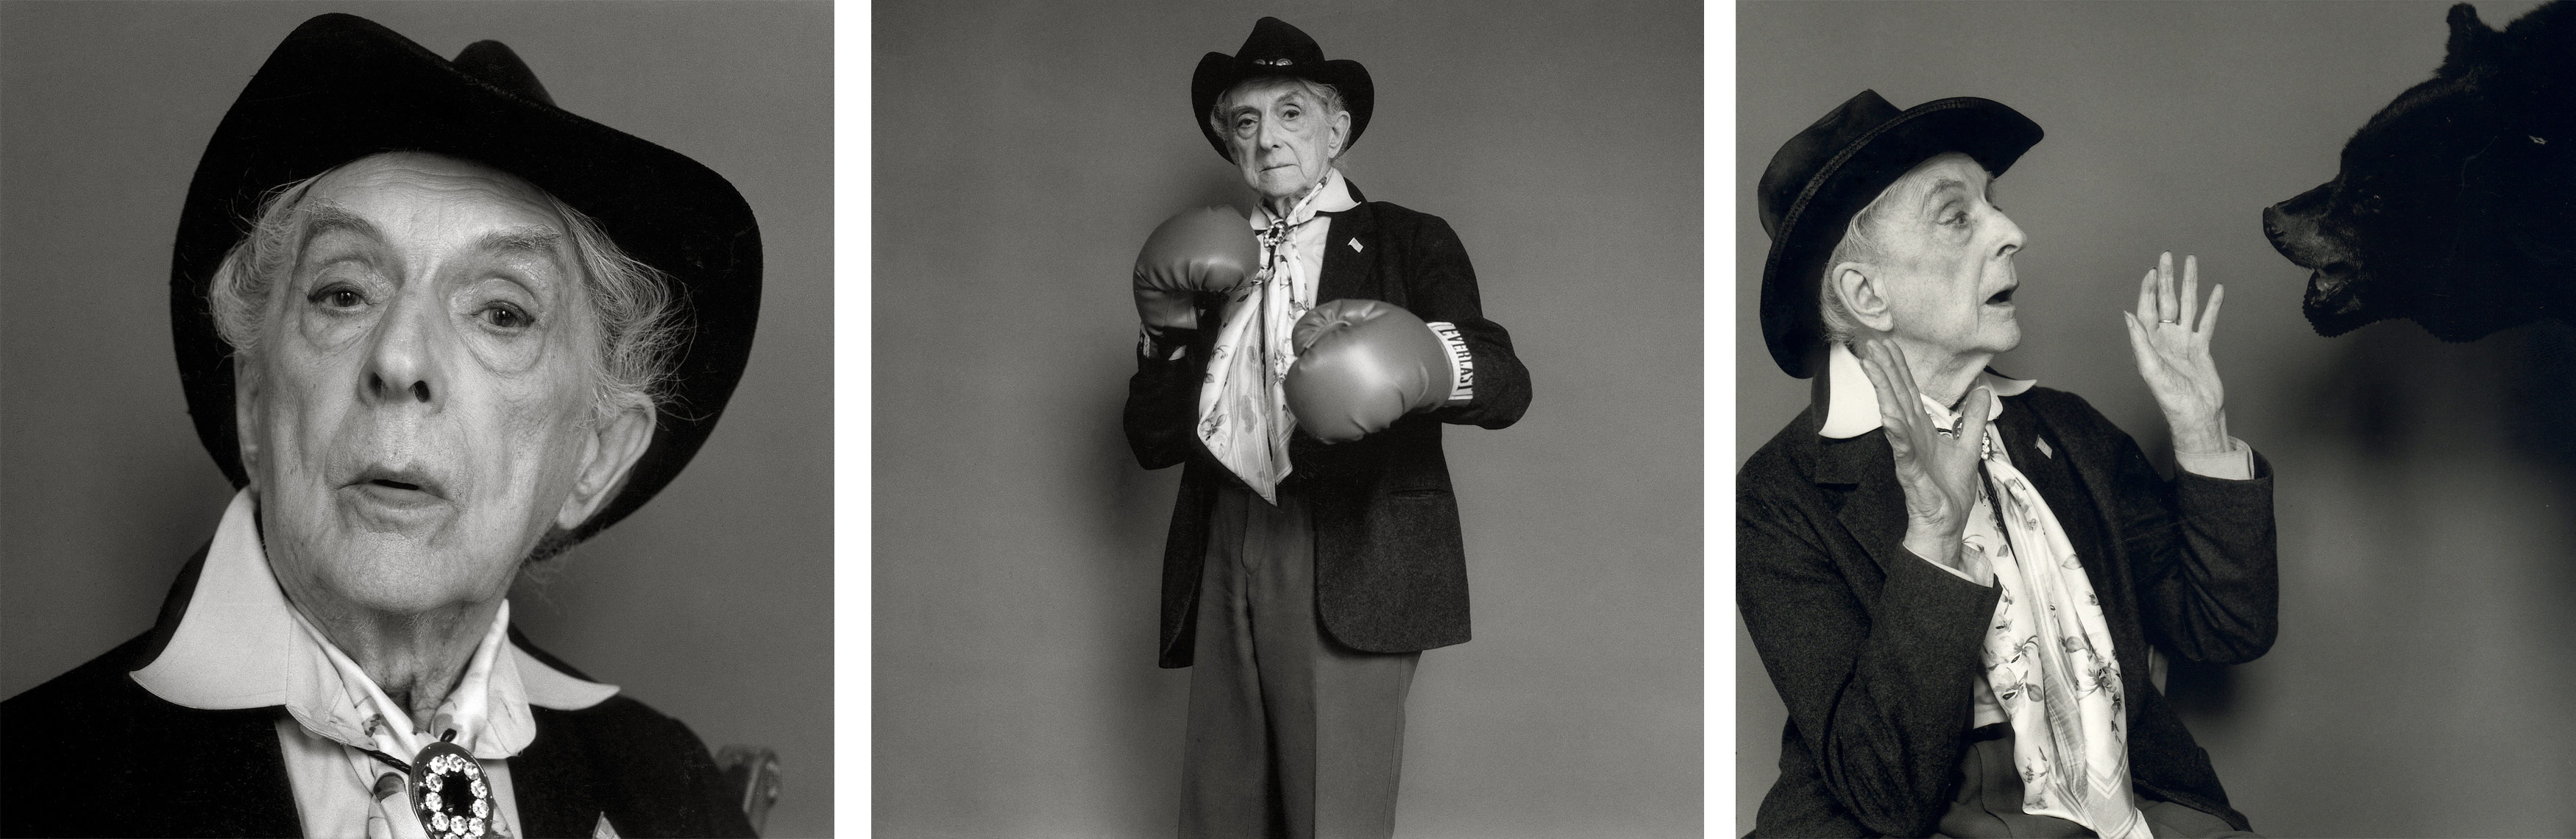 Quentin Crisp, New York